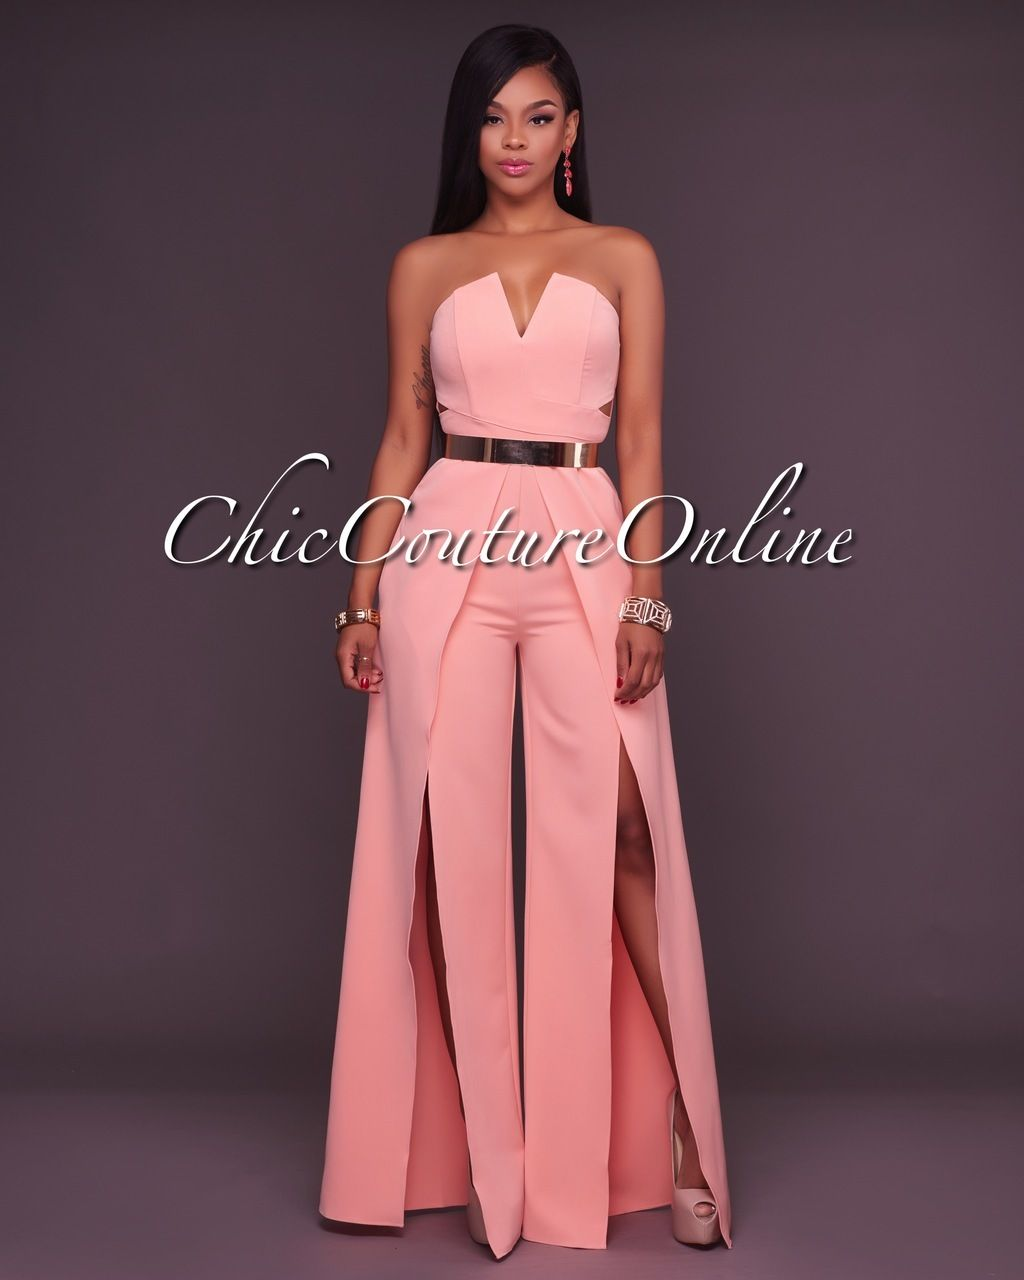 67f0fc709e79 Pin by Chic Couture Online on Clothing ~ Chic Couture Online | Strapless  dress formal, Chic couture online, Jumpsuit